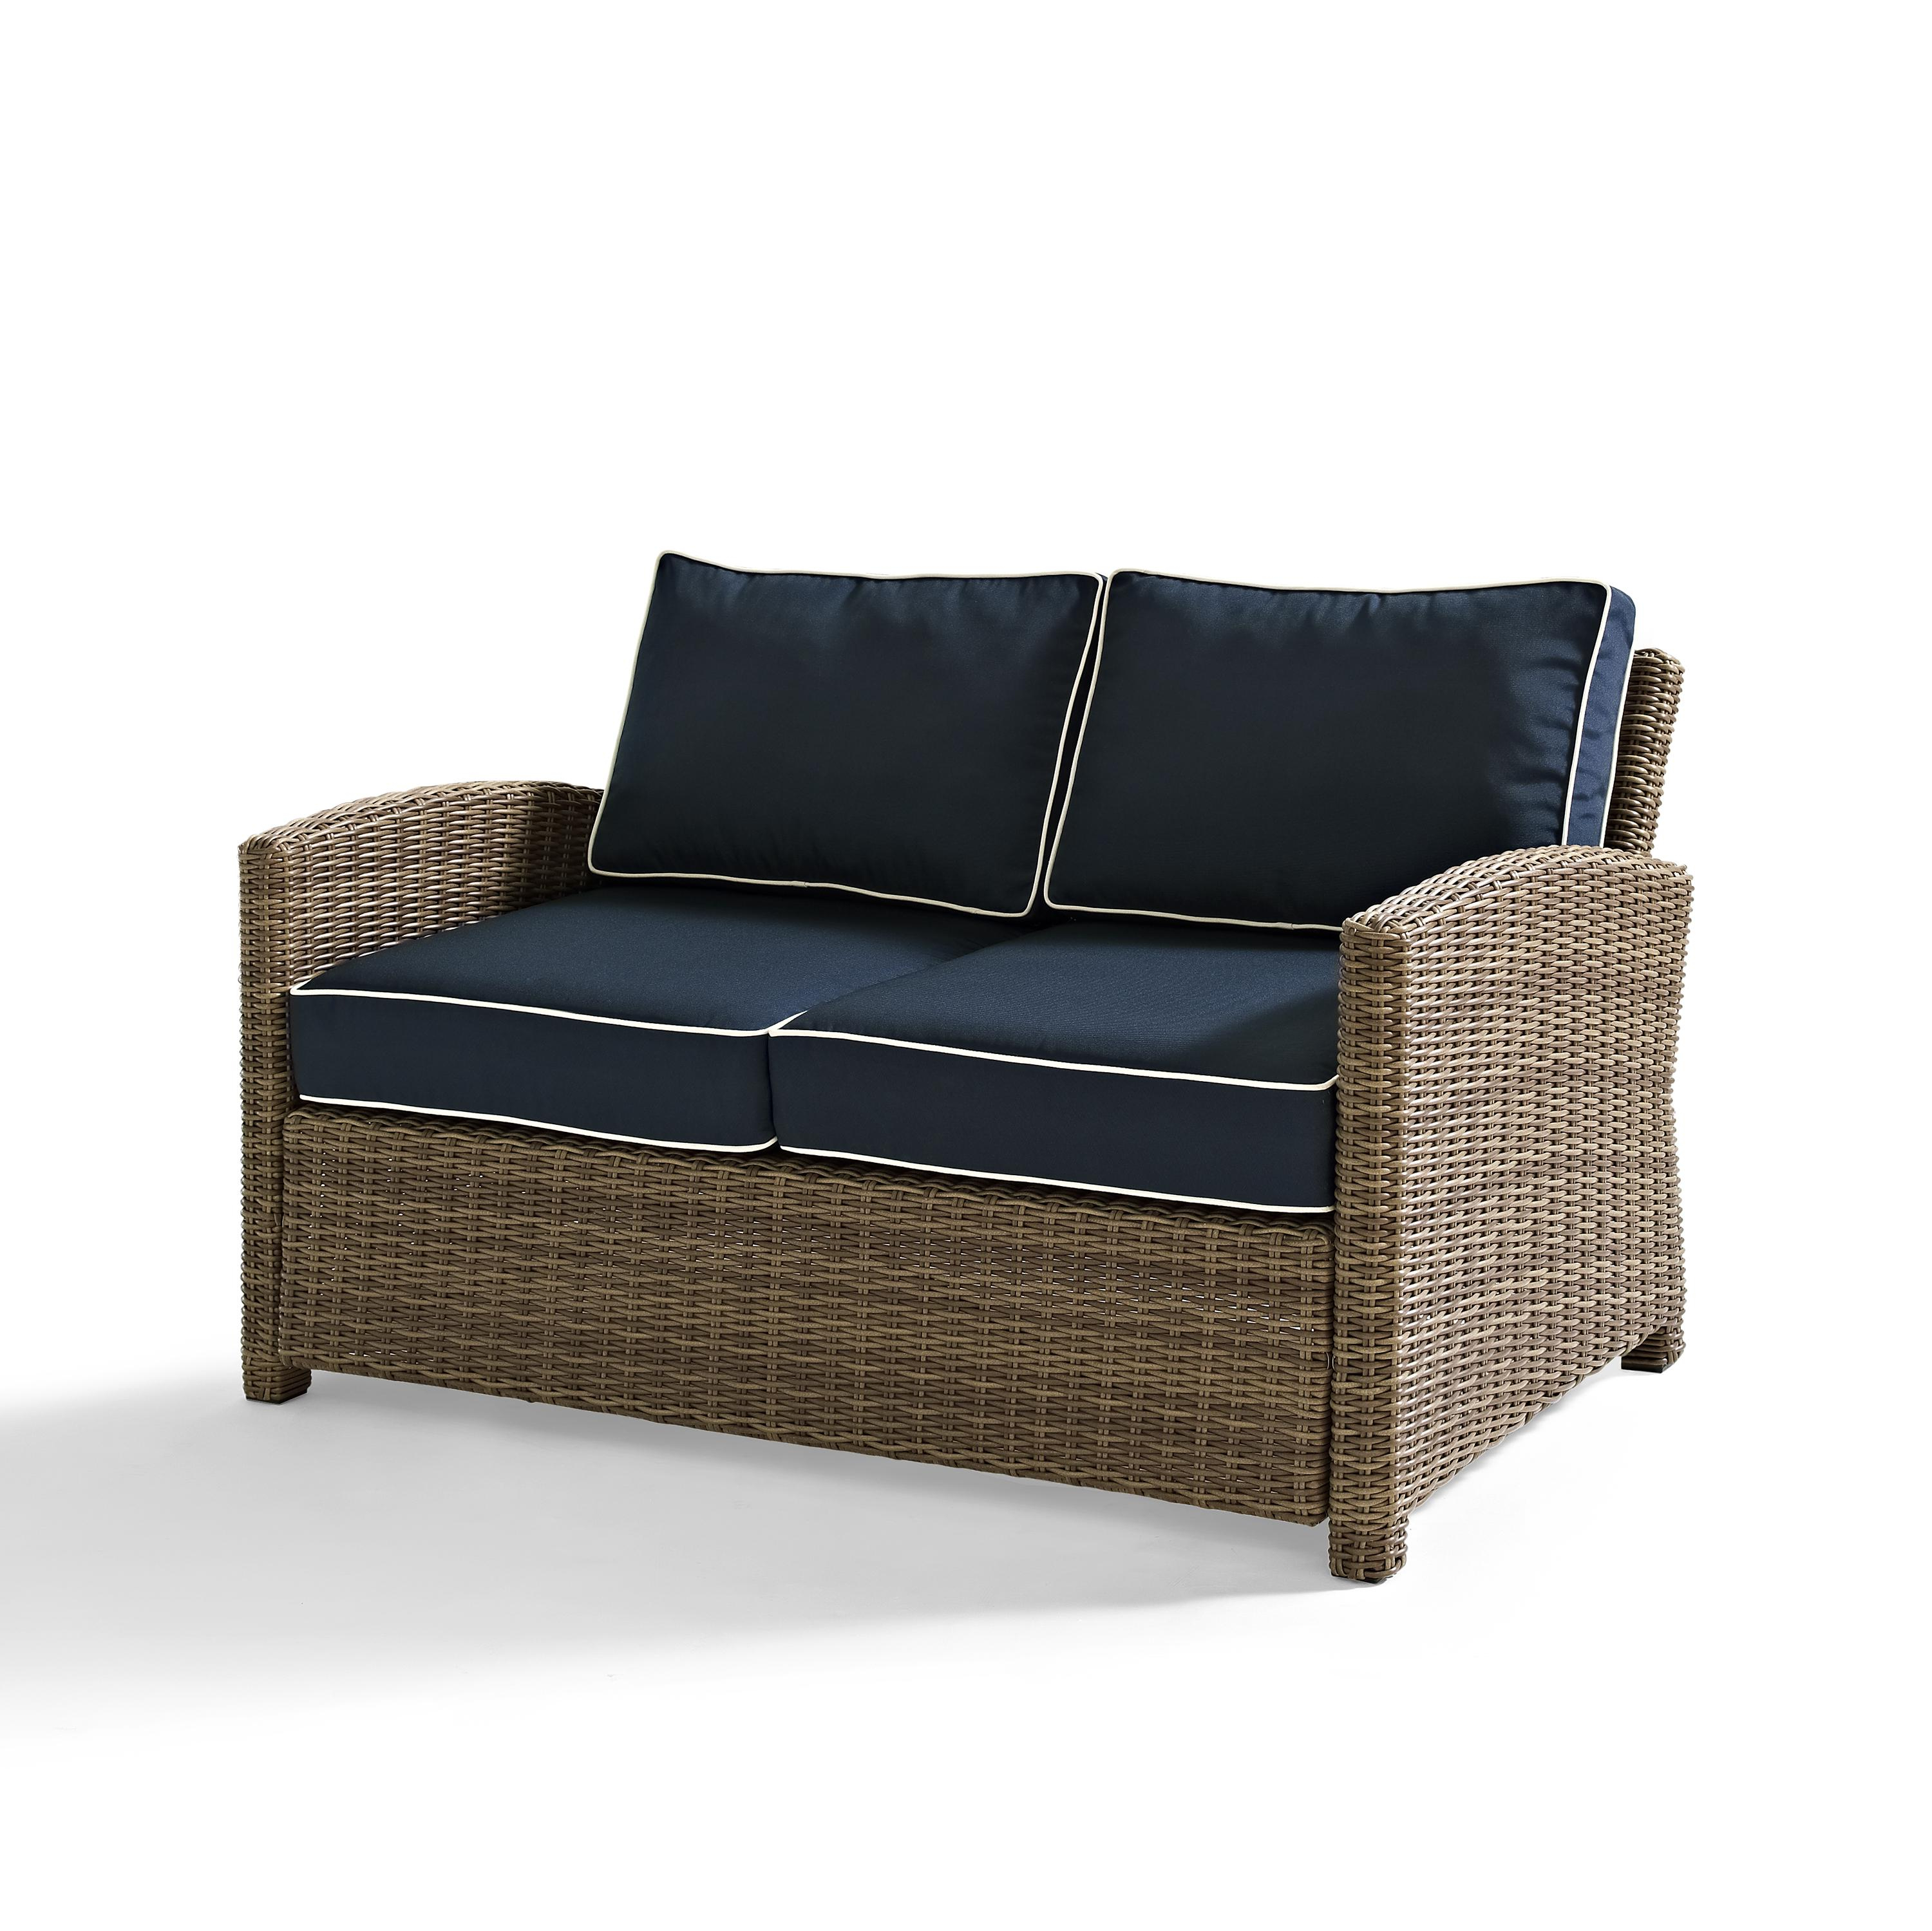 Widely Used Bradenton Outdoor Wicker Chaise Lounges With Cushions With Crosley Bradenton Outdoor Wicker Loveseat With Sangria Cushions – Navy (View 22 of 25)